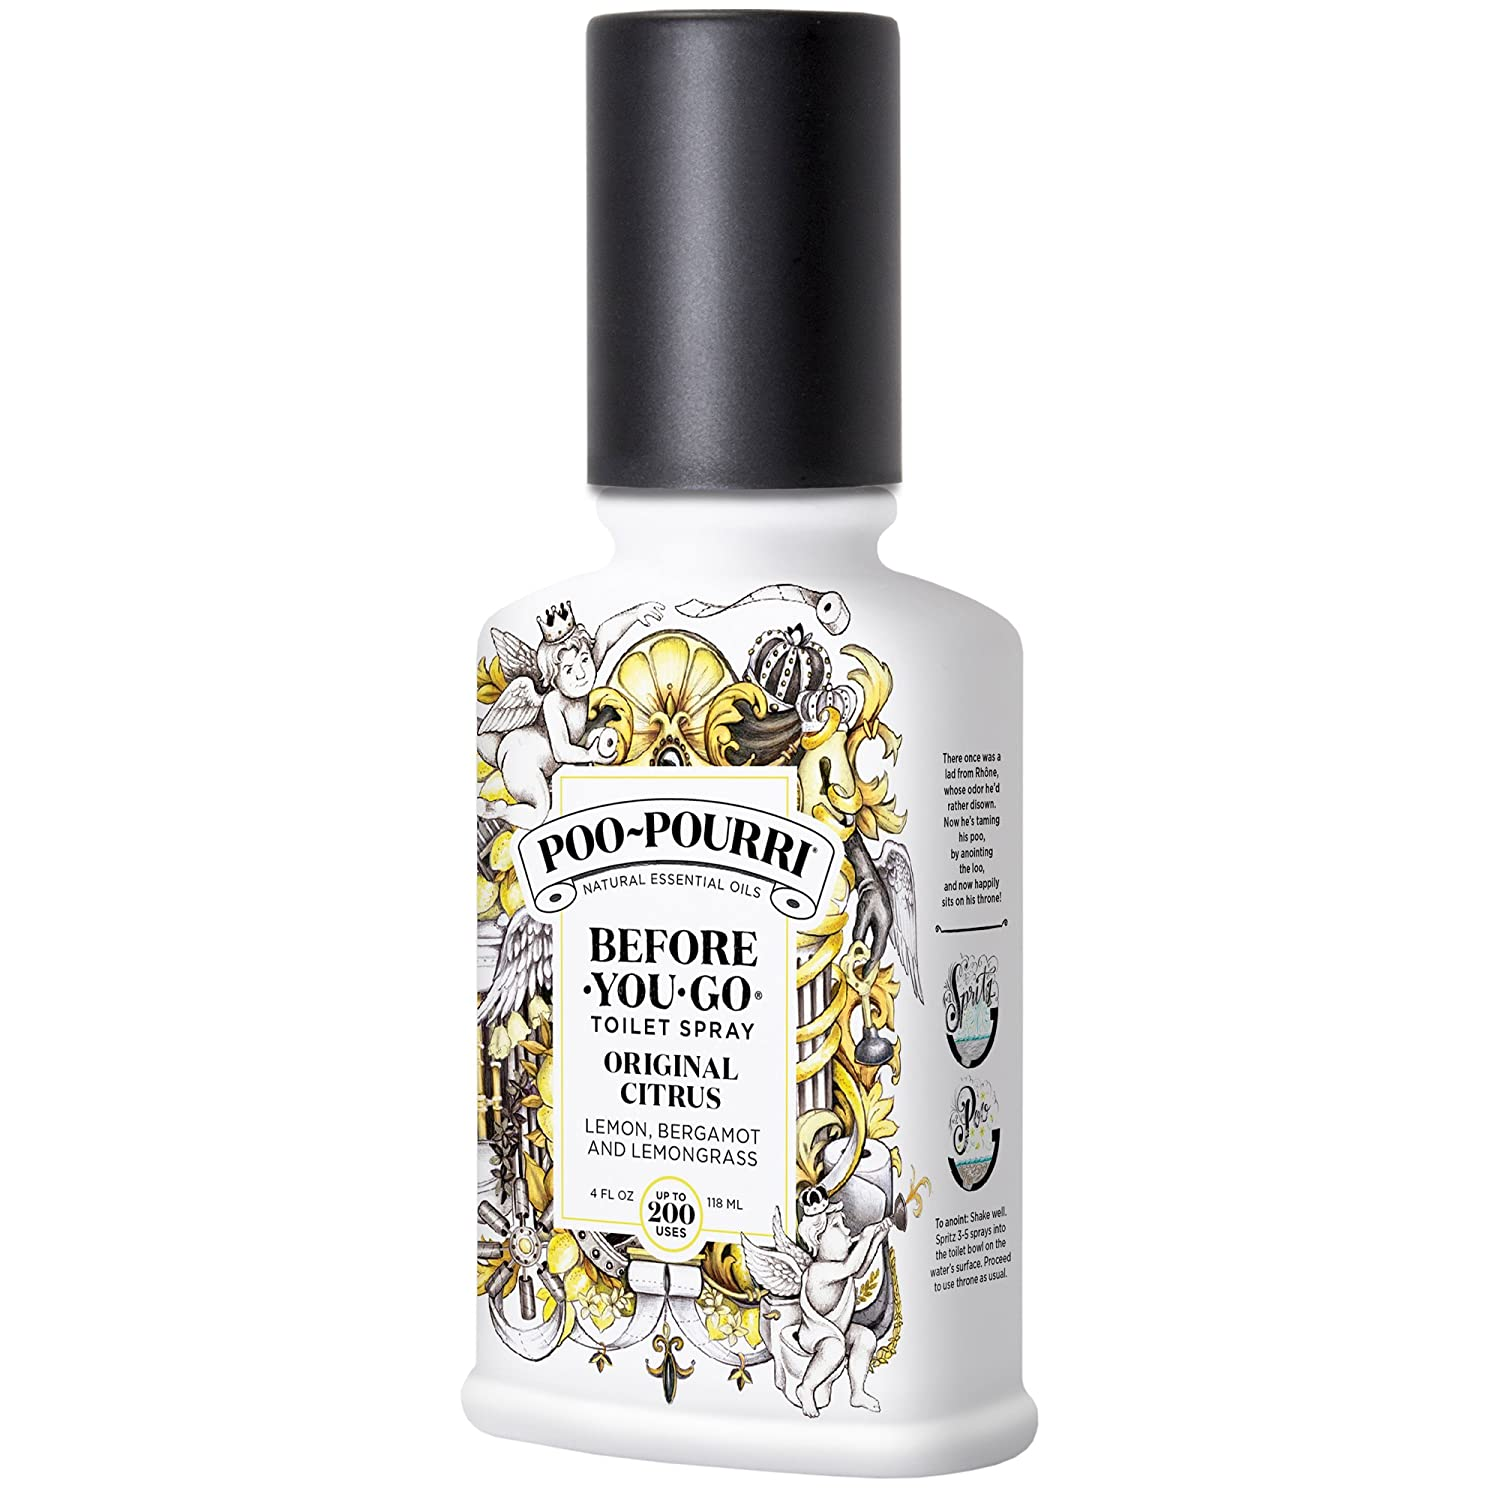 Poo-Pourri Before-You-Go Toilet Spray 2 oz Bottle, Original Citrus Scent Poo~pourri PP-002-CB